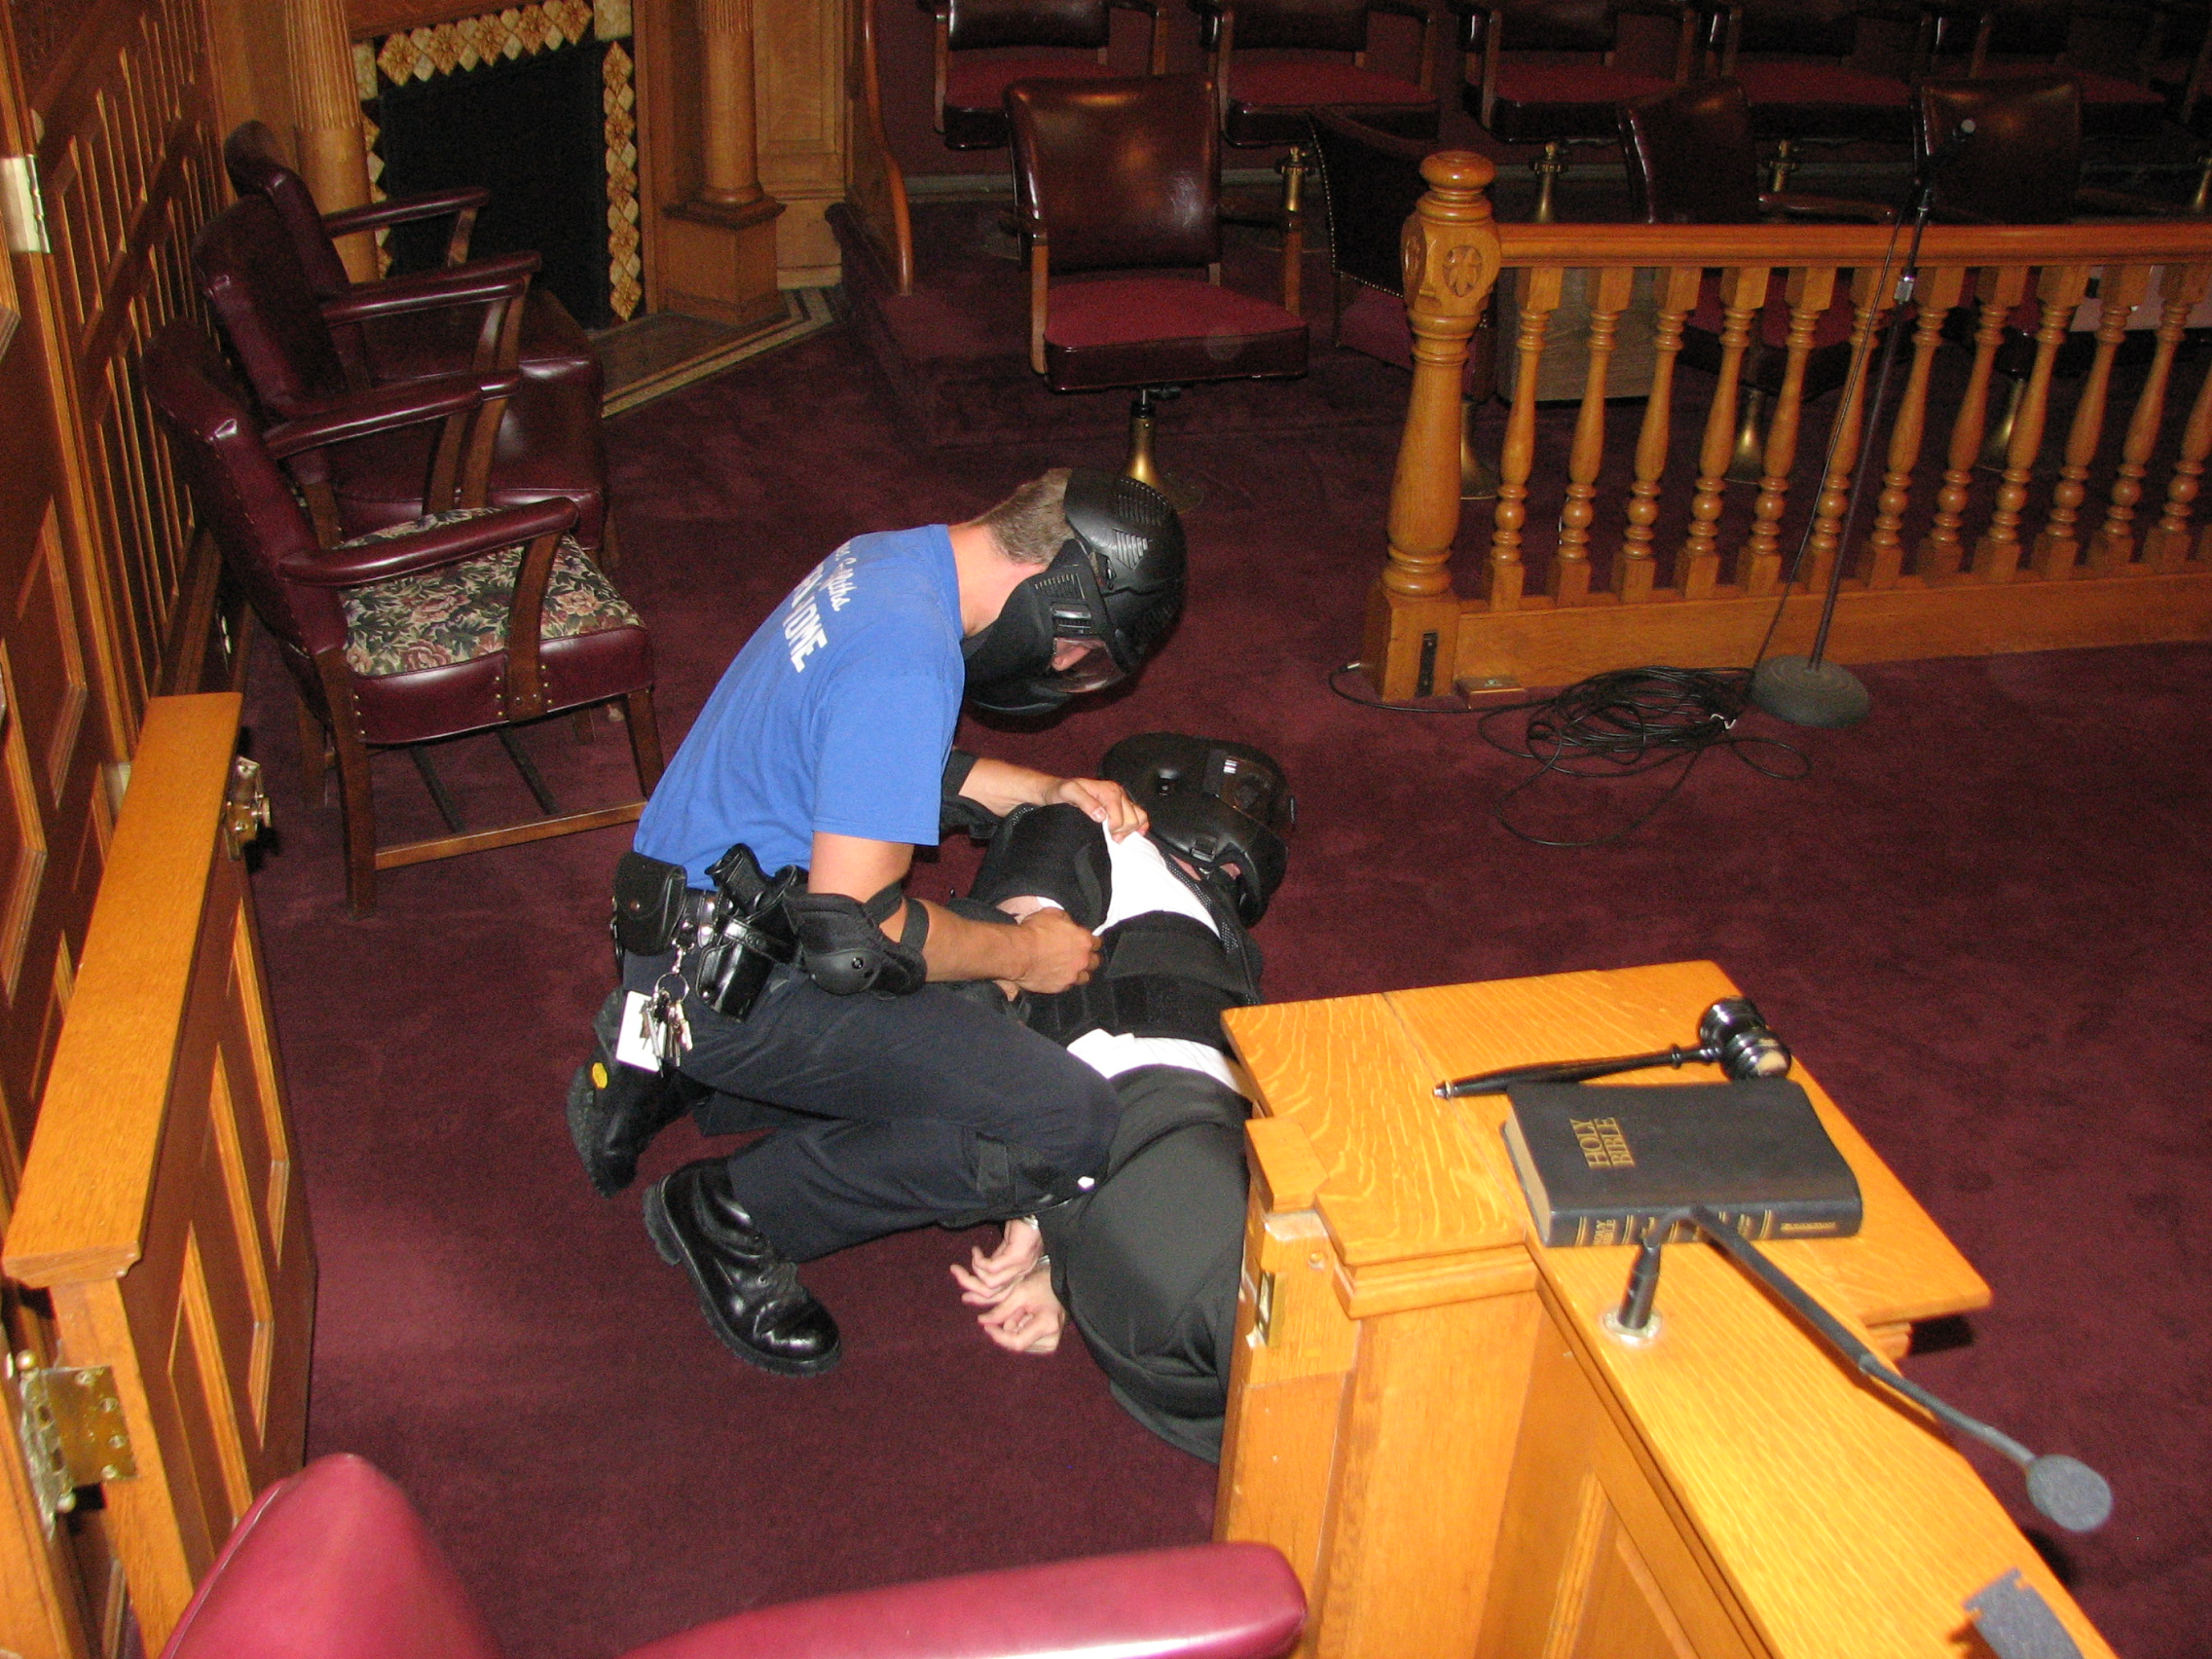 Court Room Disturbance Training